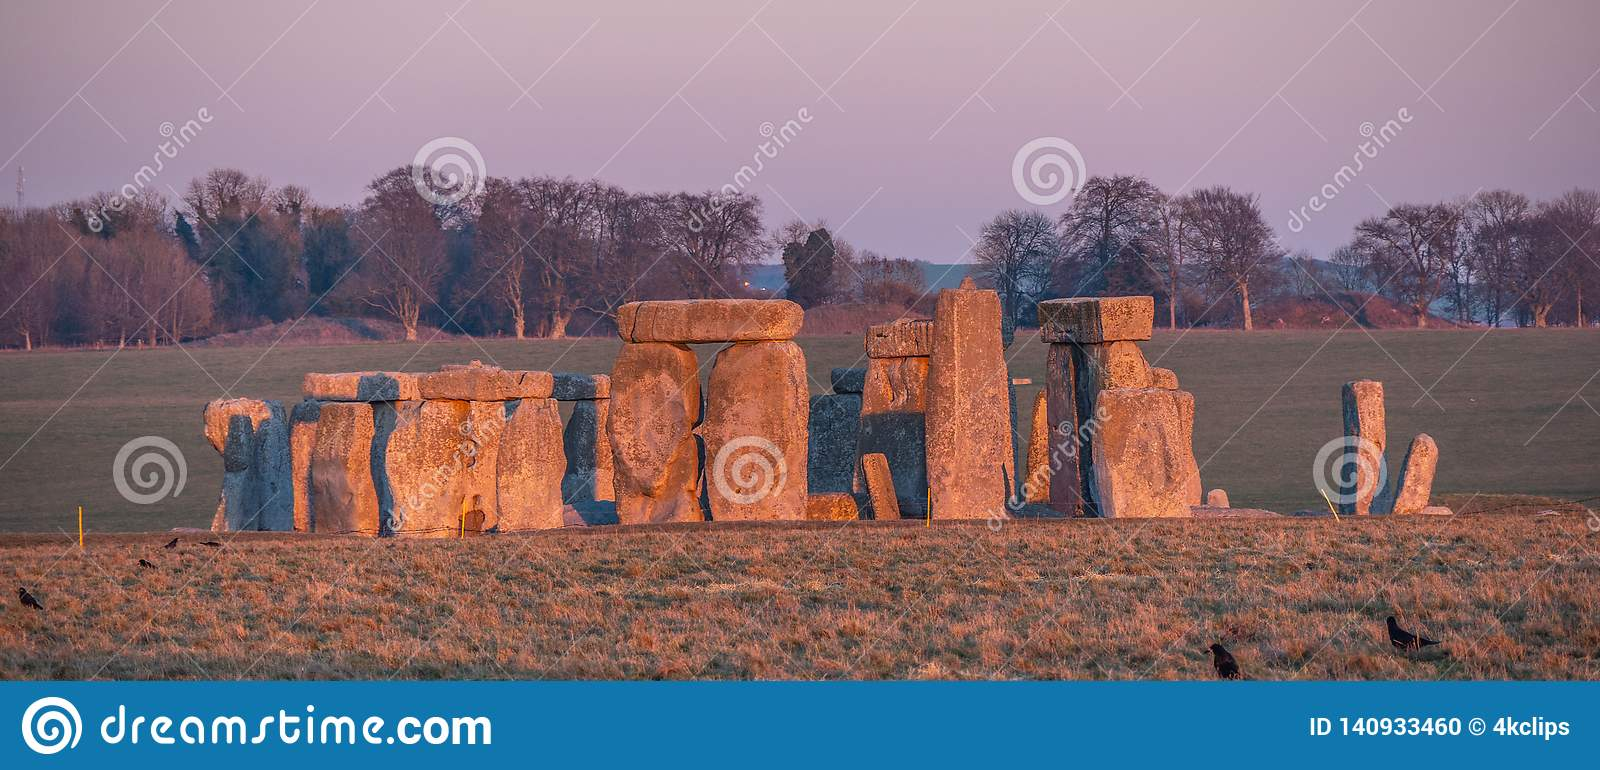 The mystery of Stonehenge in England